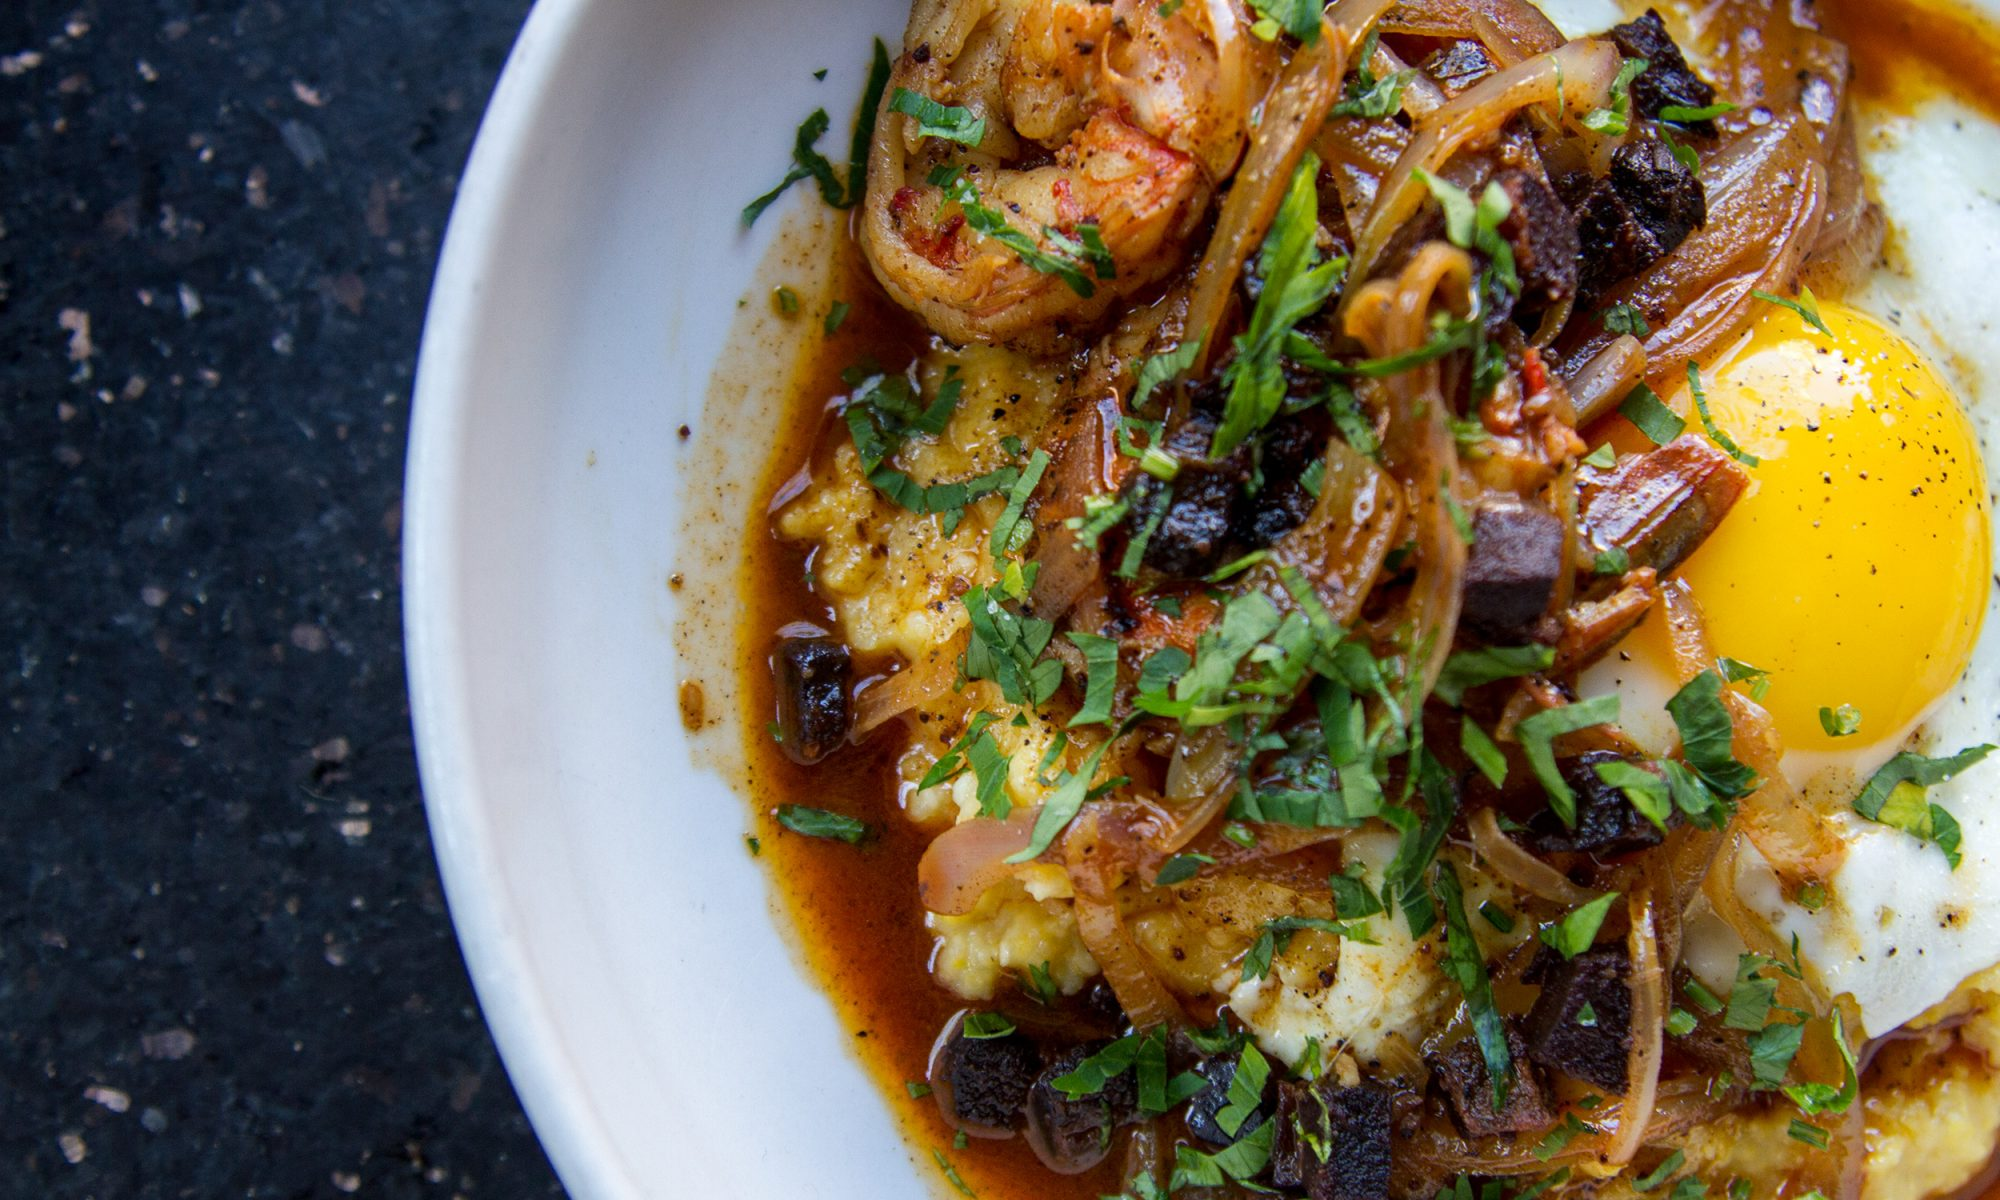 This Italian-Style Shrimp and Grits Recipe Stays True to Its Roots